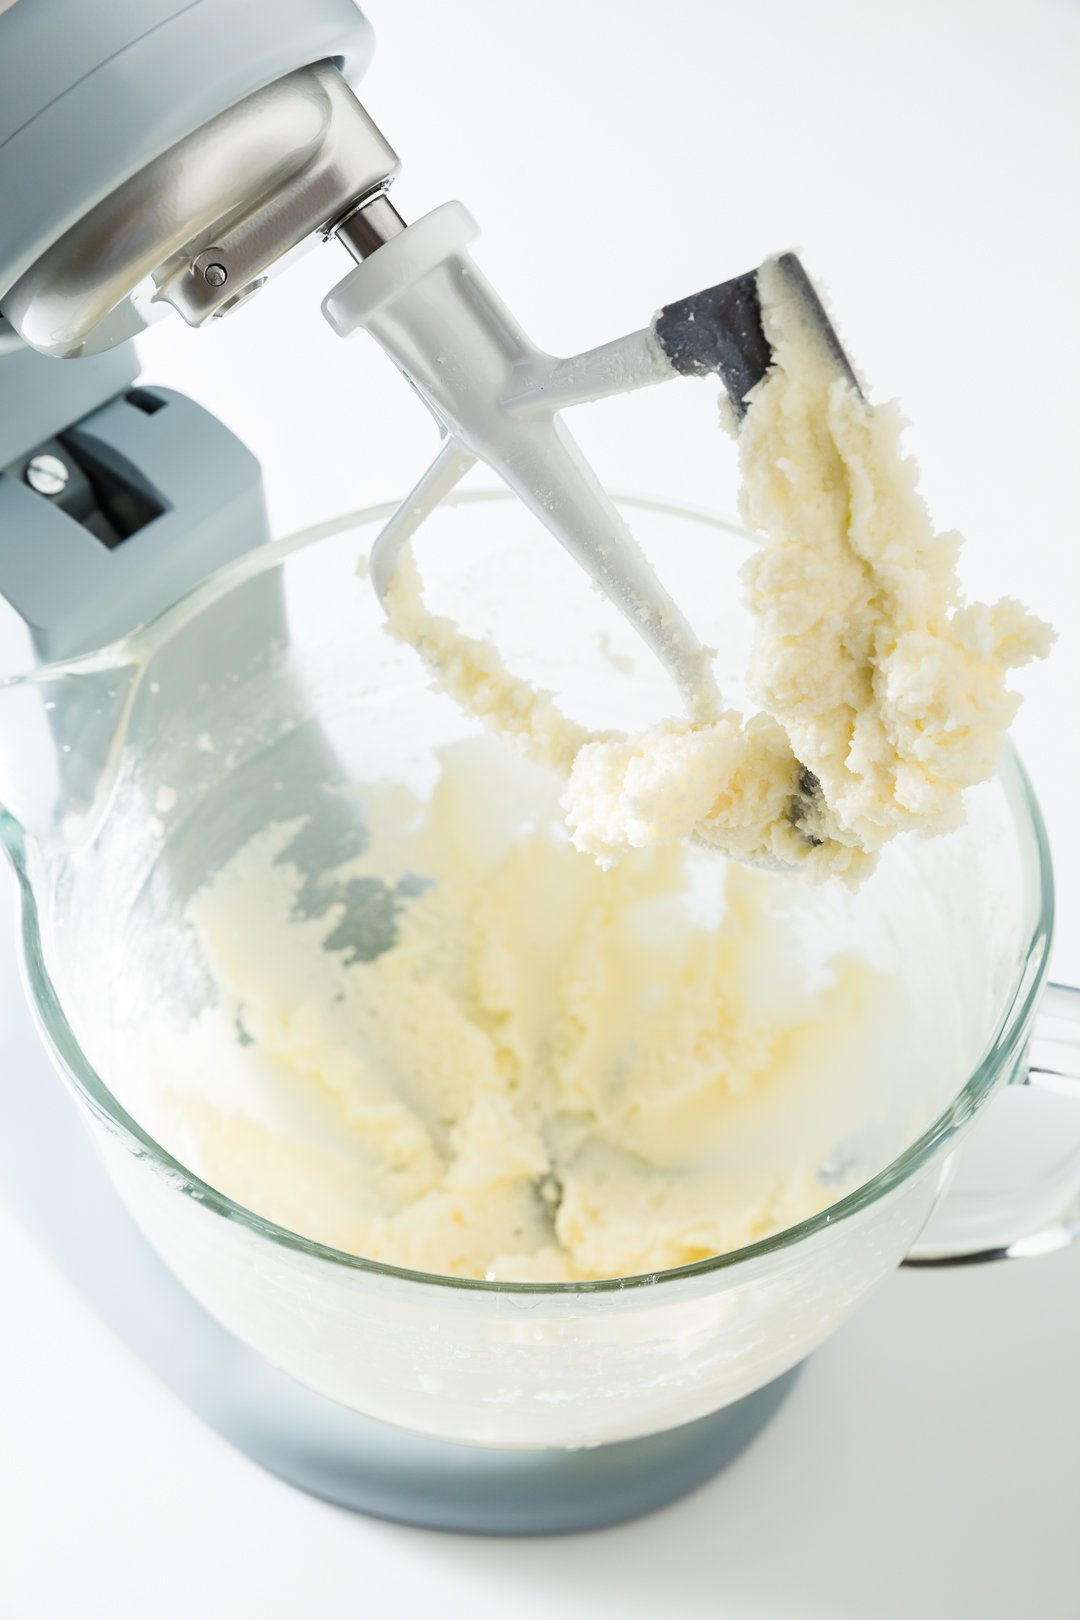 Butter and sugar creamed in a stand mixer bowl